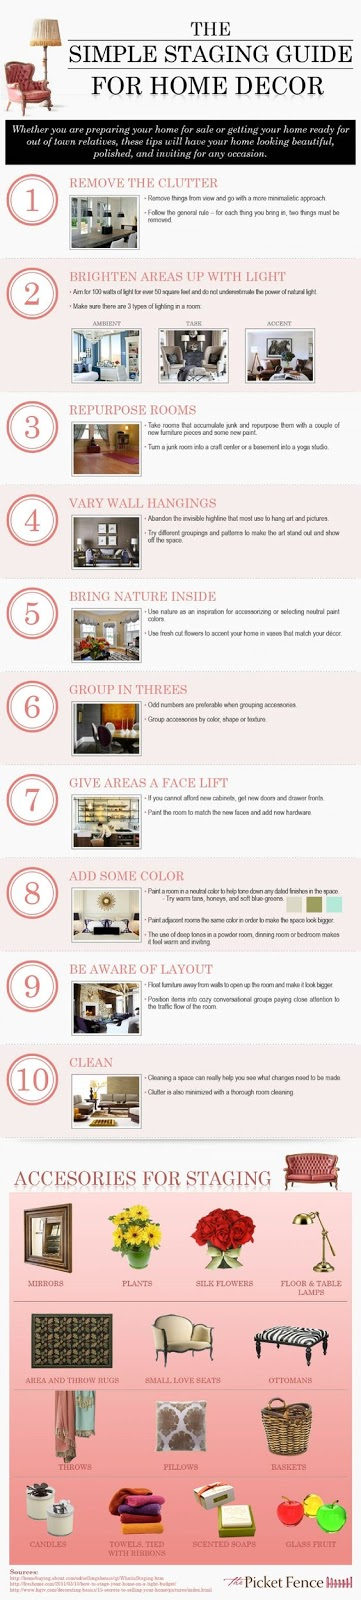 How to Stage a Home Infographic on Hello Lovely Studio